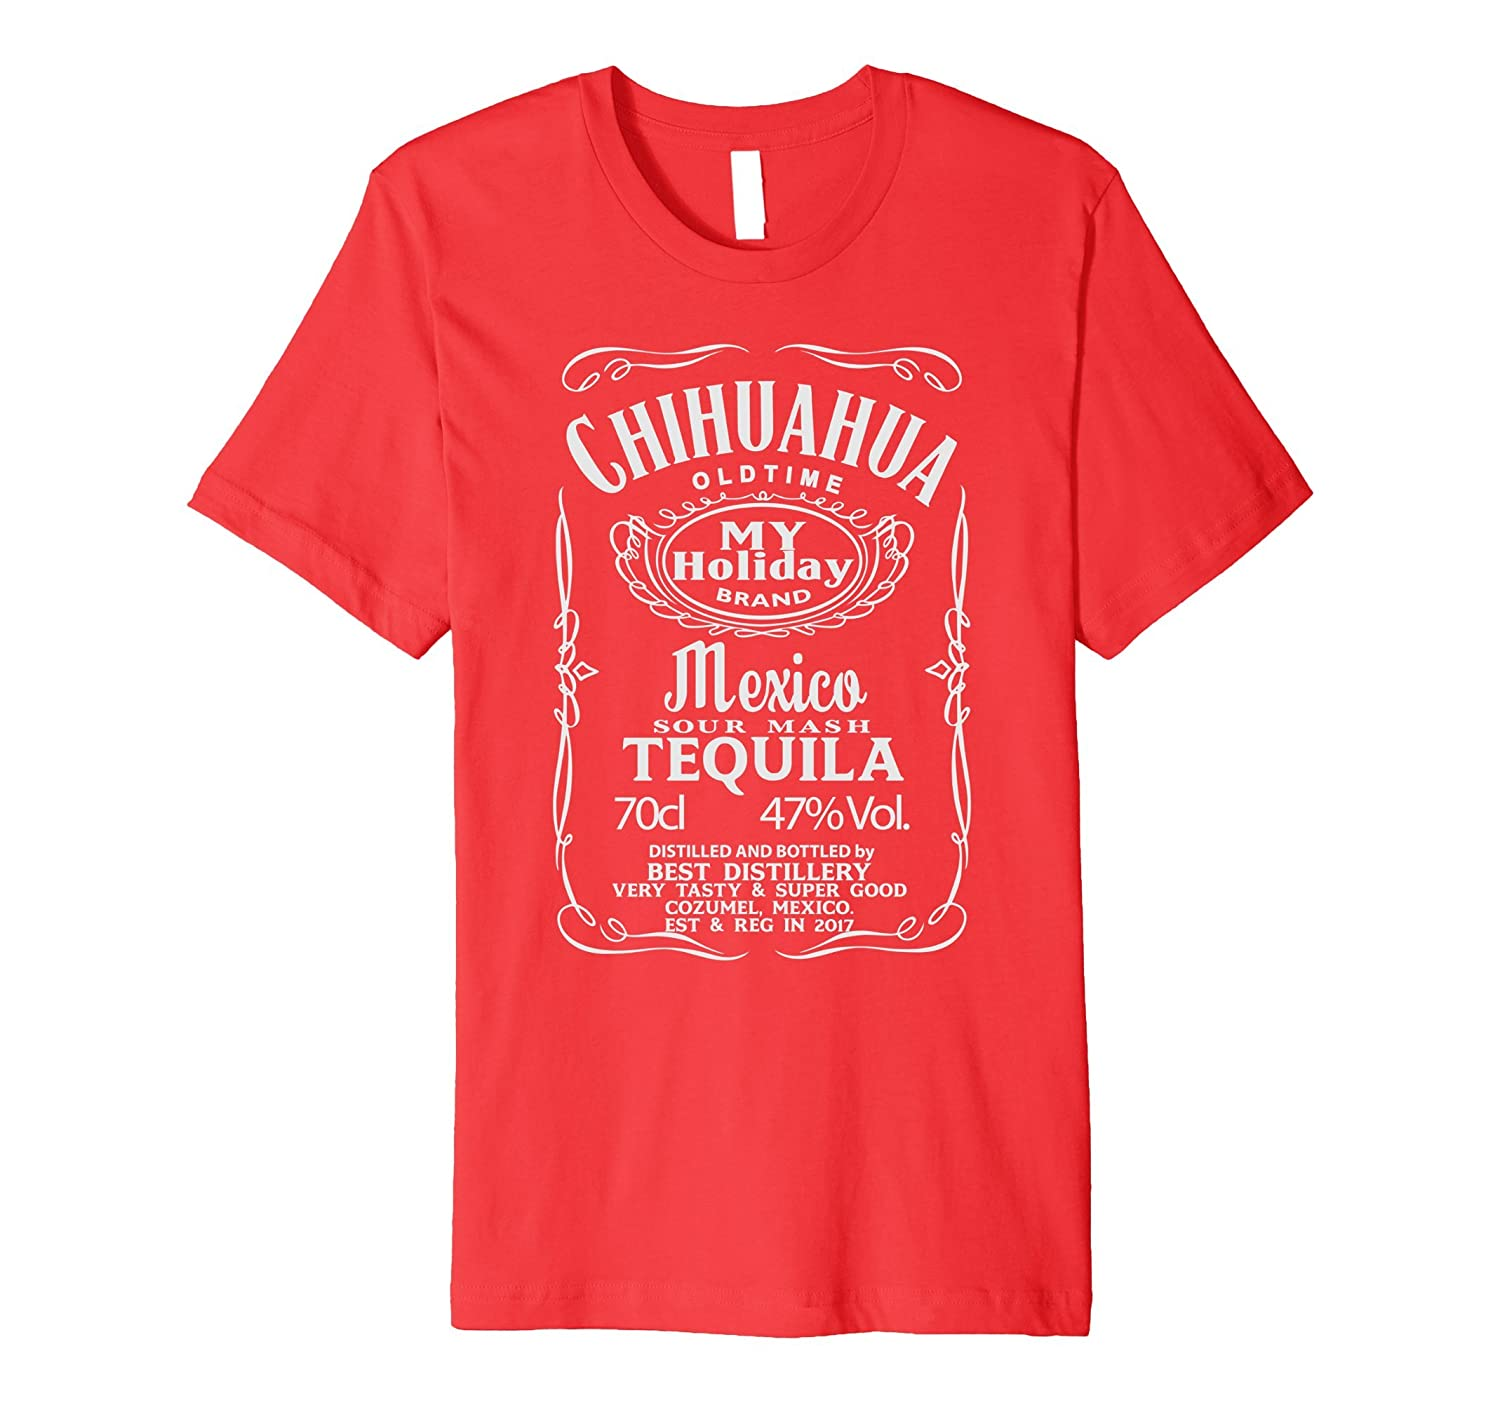 CHIHUAHUA - Mexico Tequila T-Shirt - Slim Fit-TH